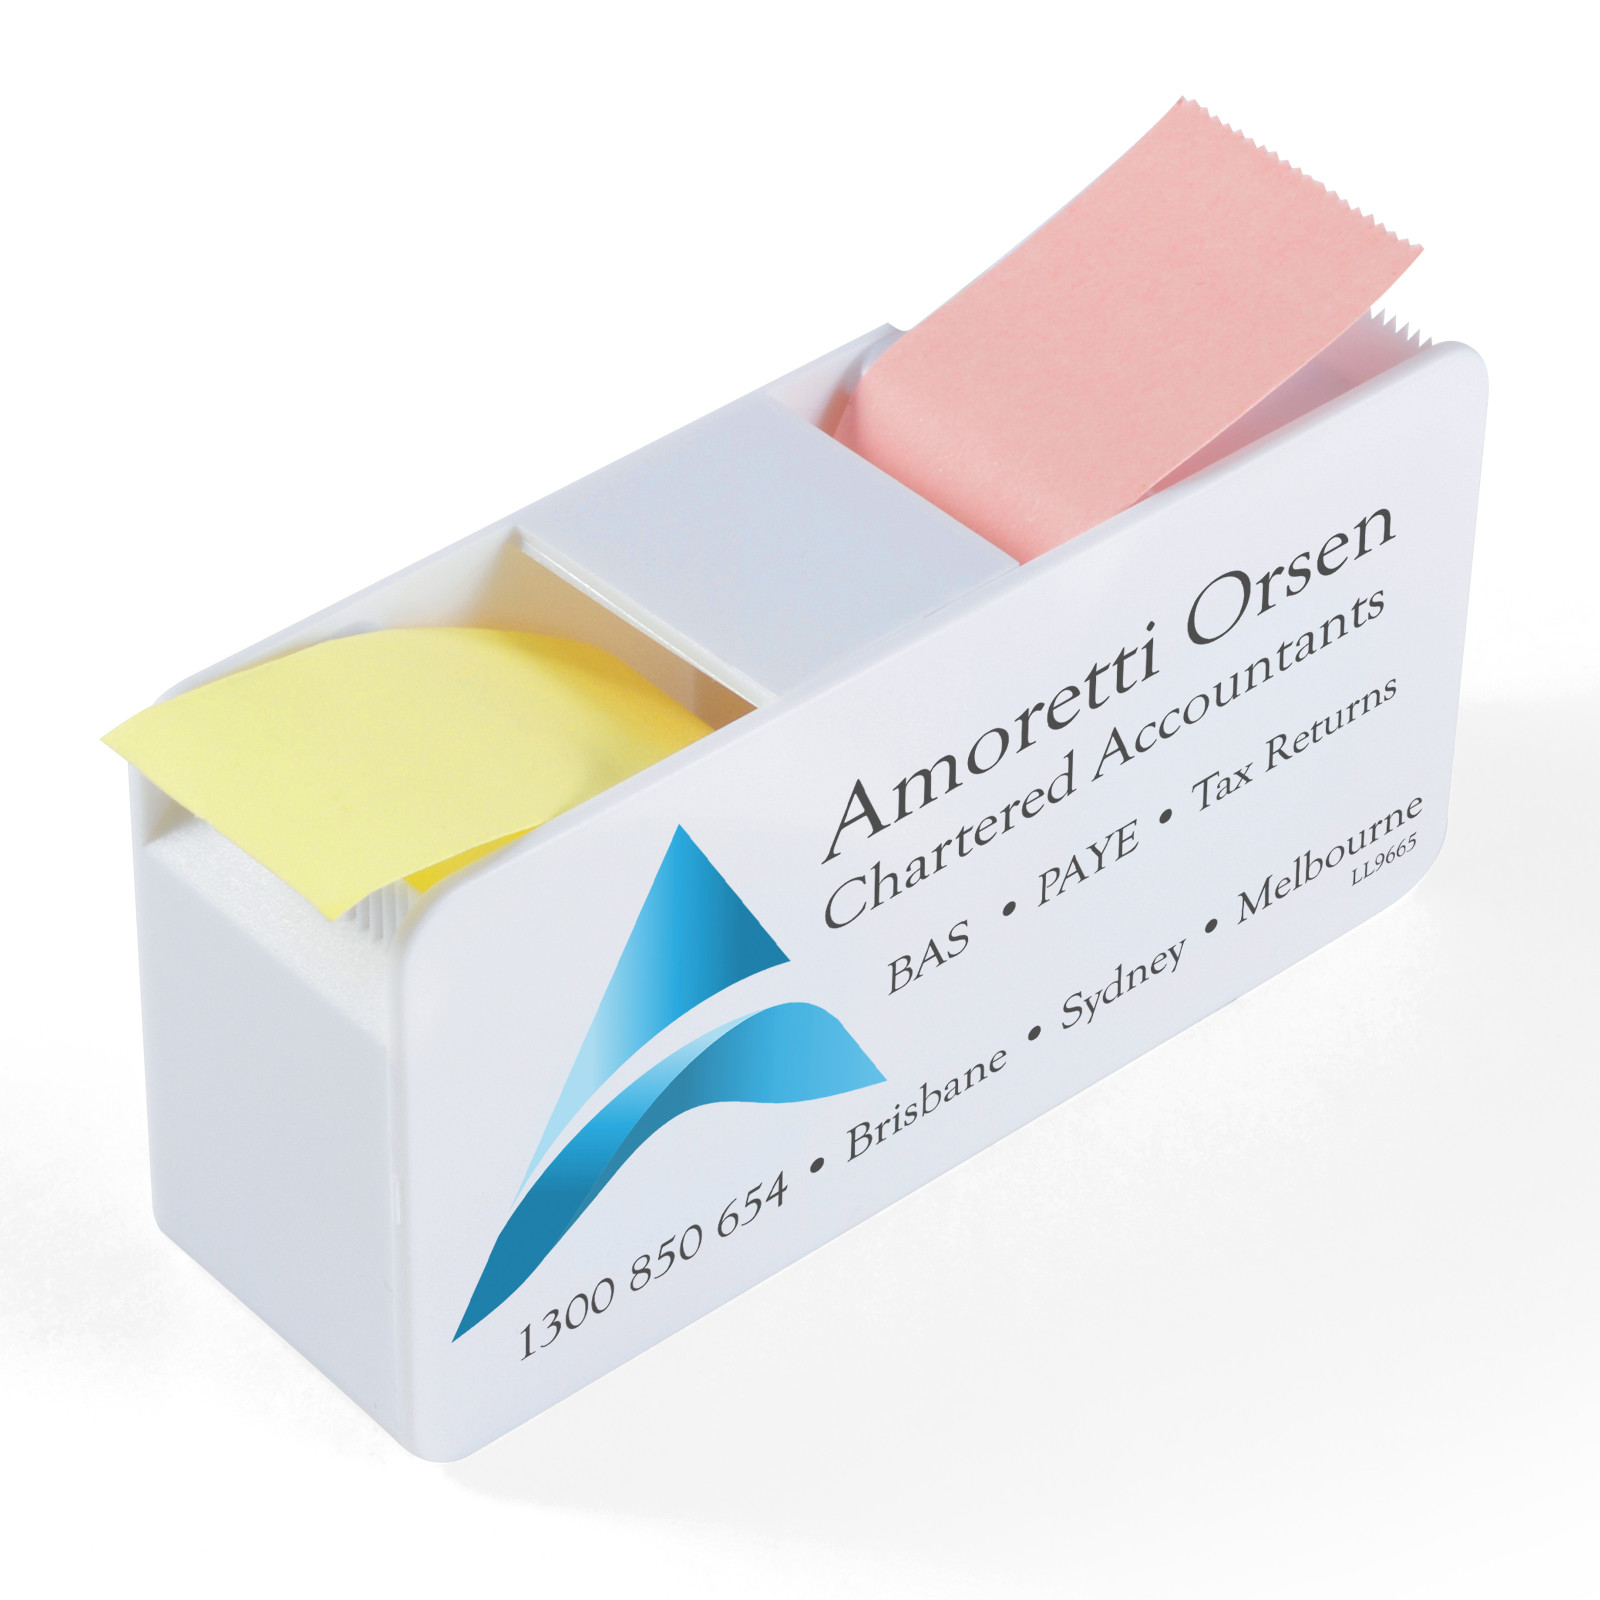 Promotional Product Duo Sticky Note Dispenser